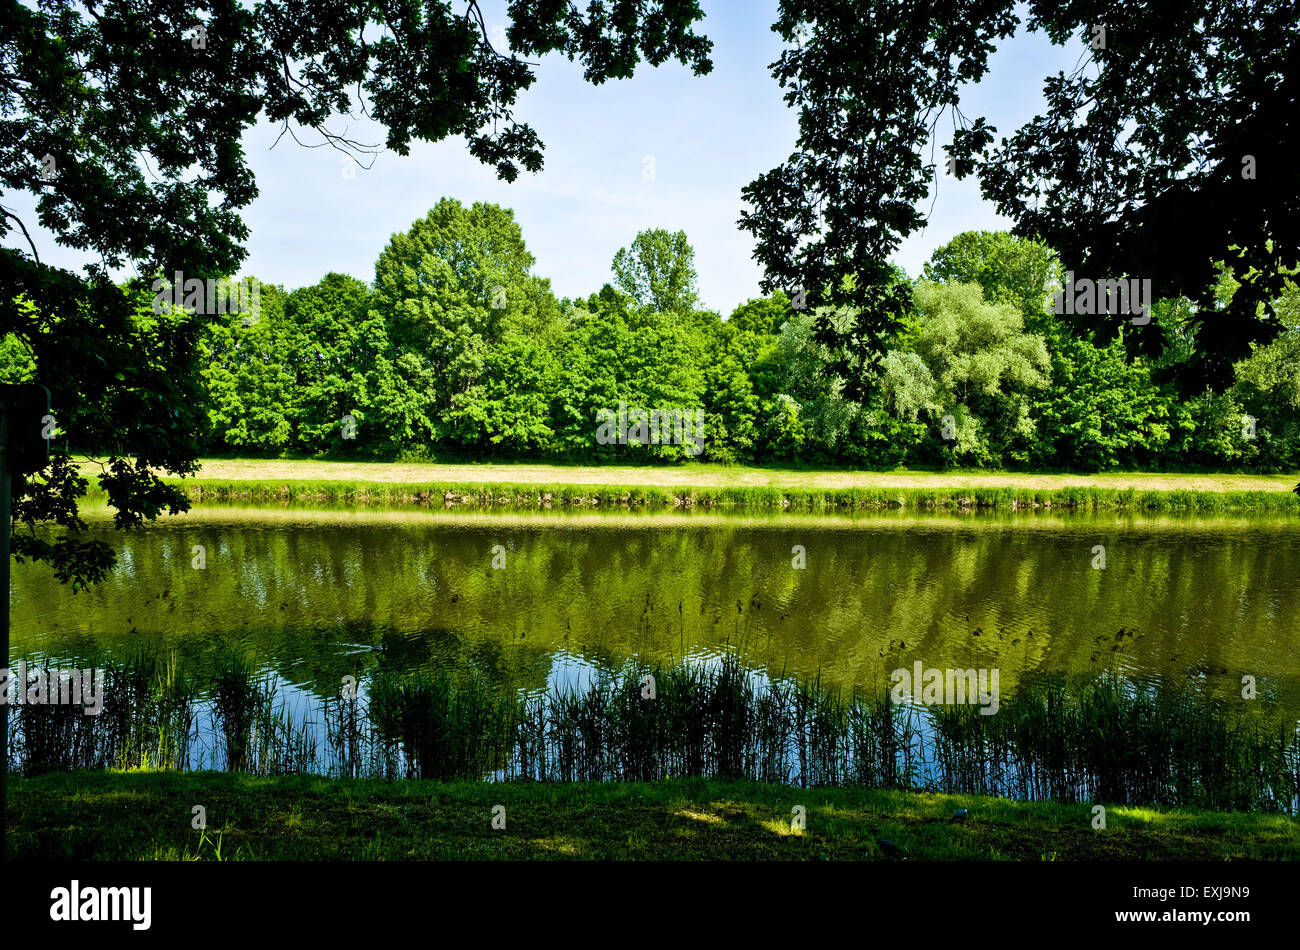 summer river and riverbank with green trees and grass - Stock Image